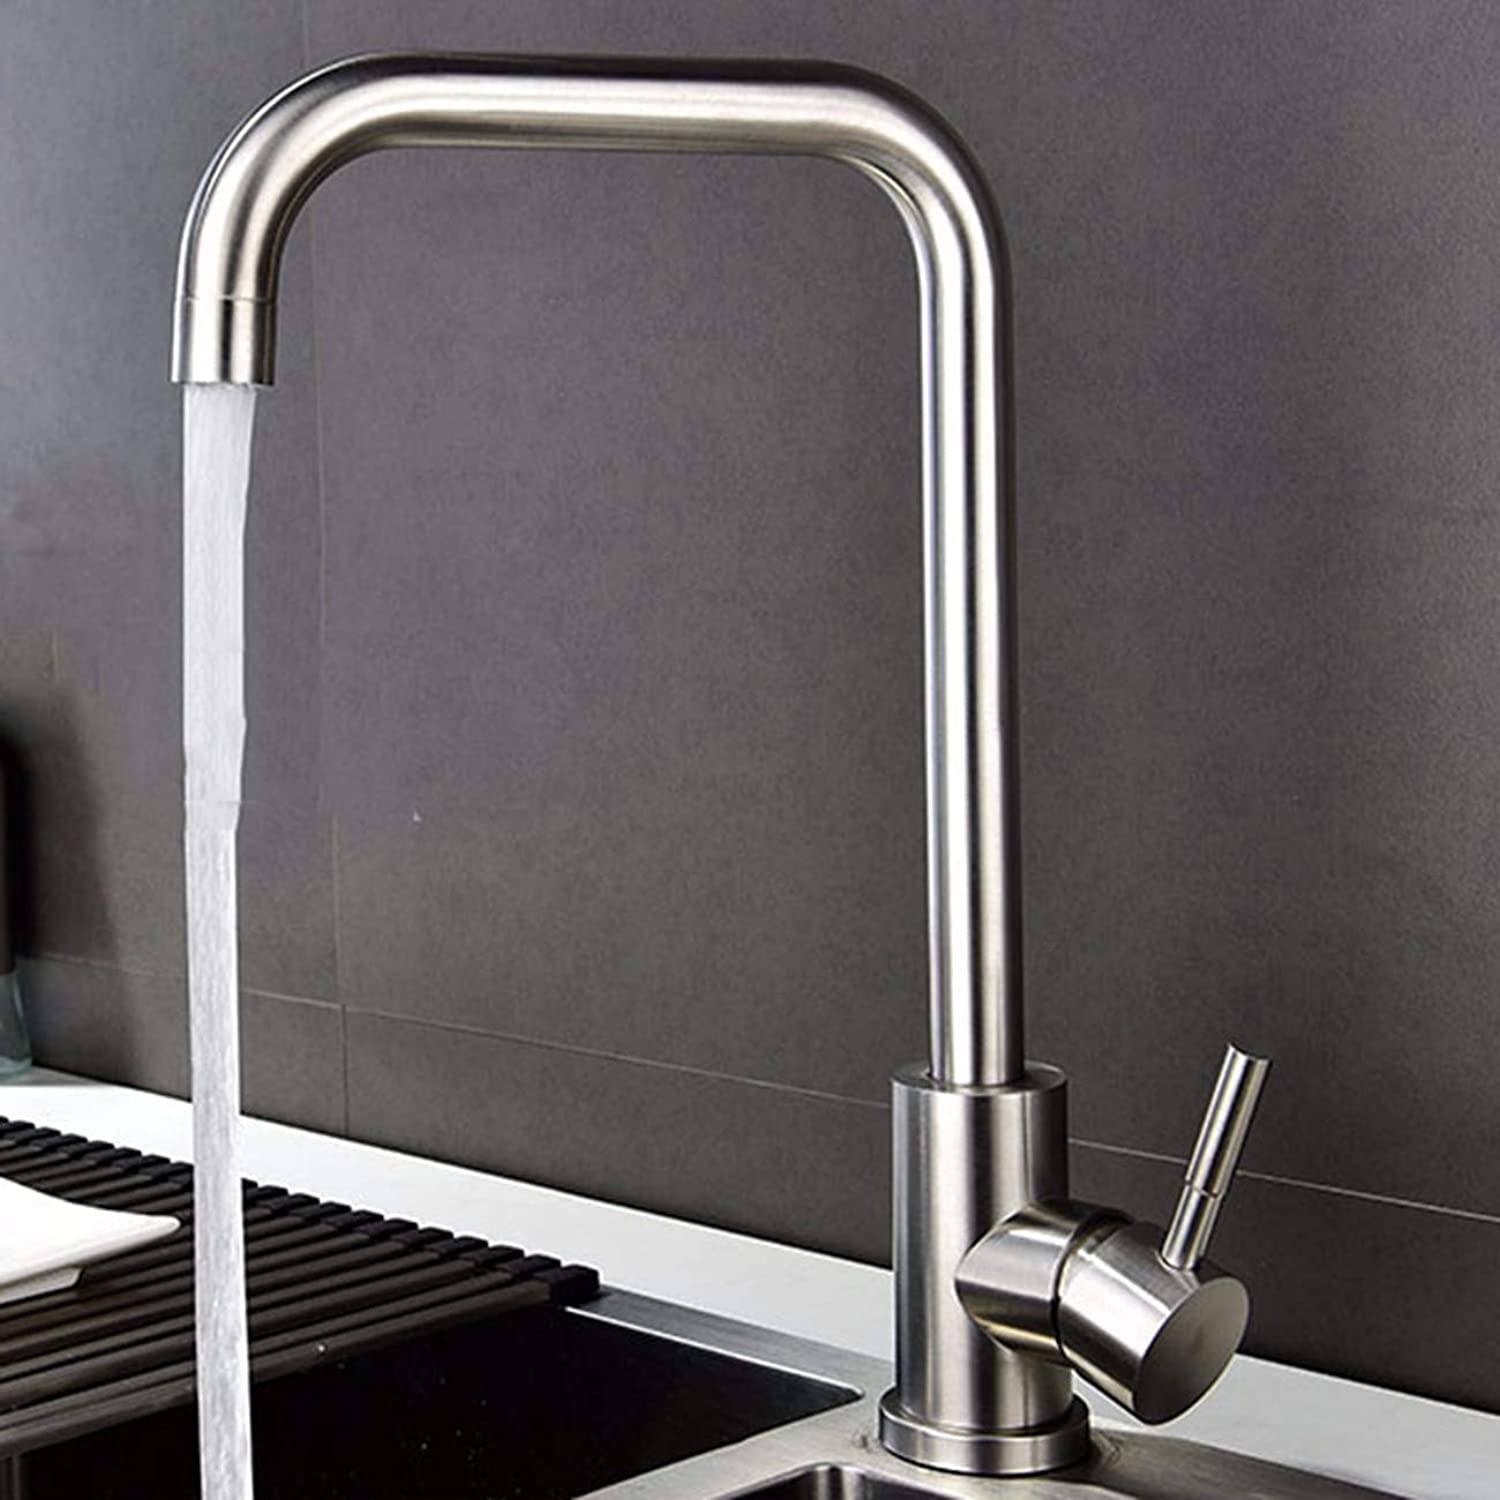 MulFaucet Kitchen Stainless Steel hot and Cold Faucet Sink Sink redatable Faucet Single Handle Double Hole Sink Faucet D